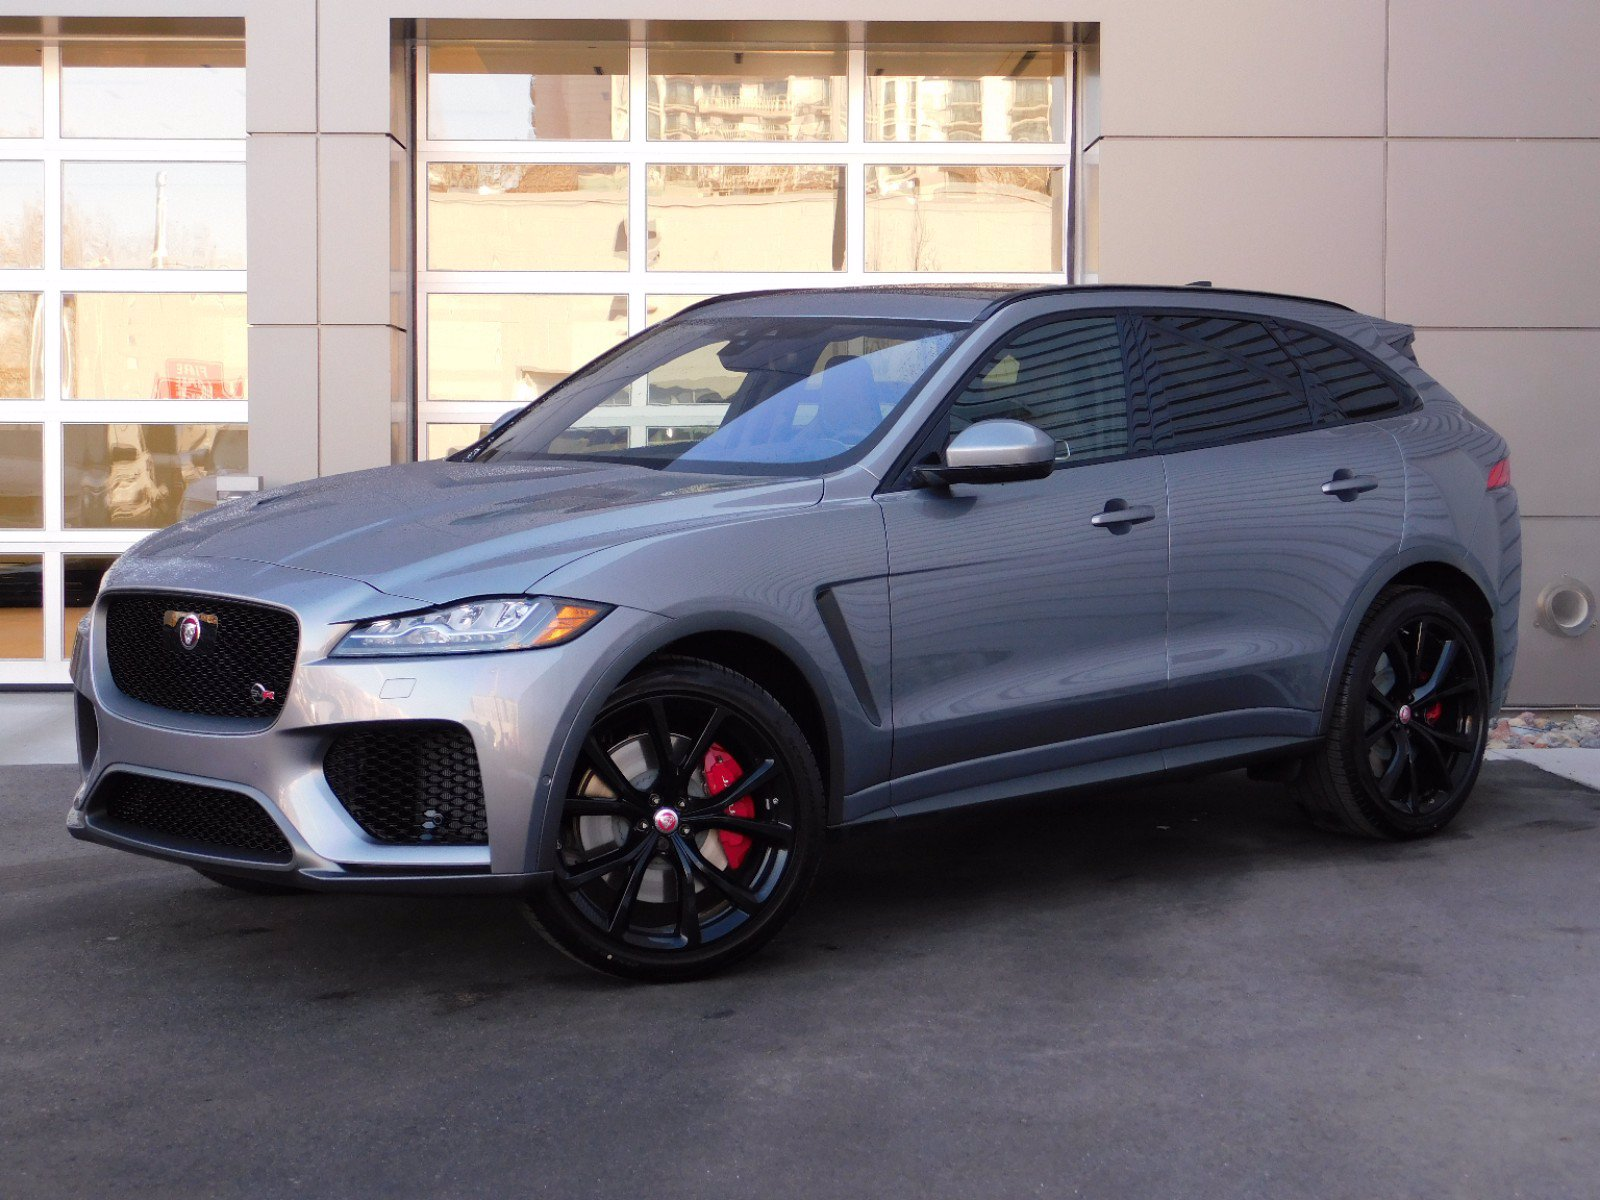 New 2020 Jaguar F-PACE SVR SUV in Salt Lake City #1J0045 ...